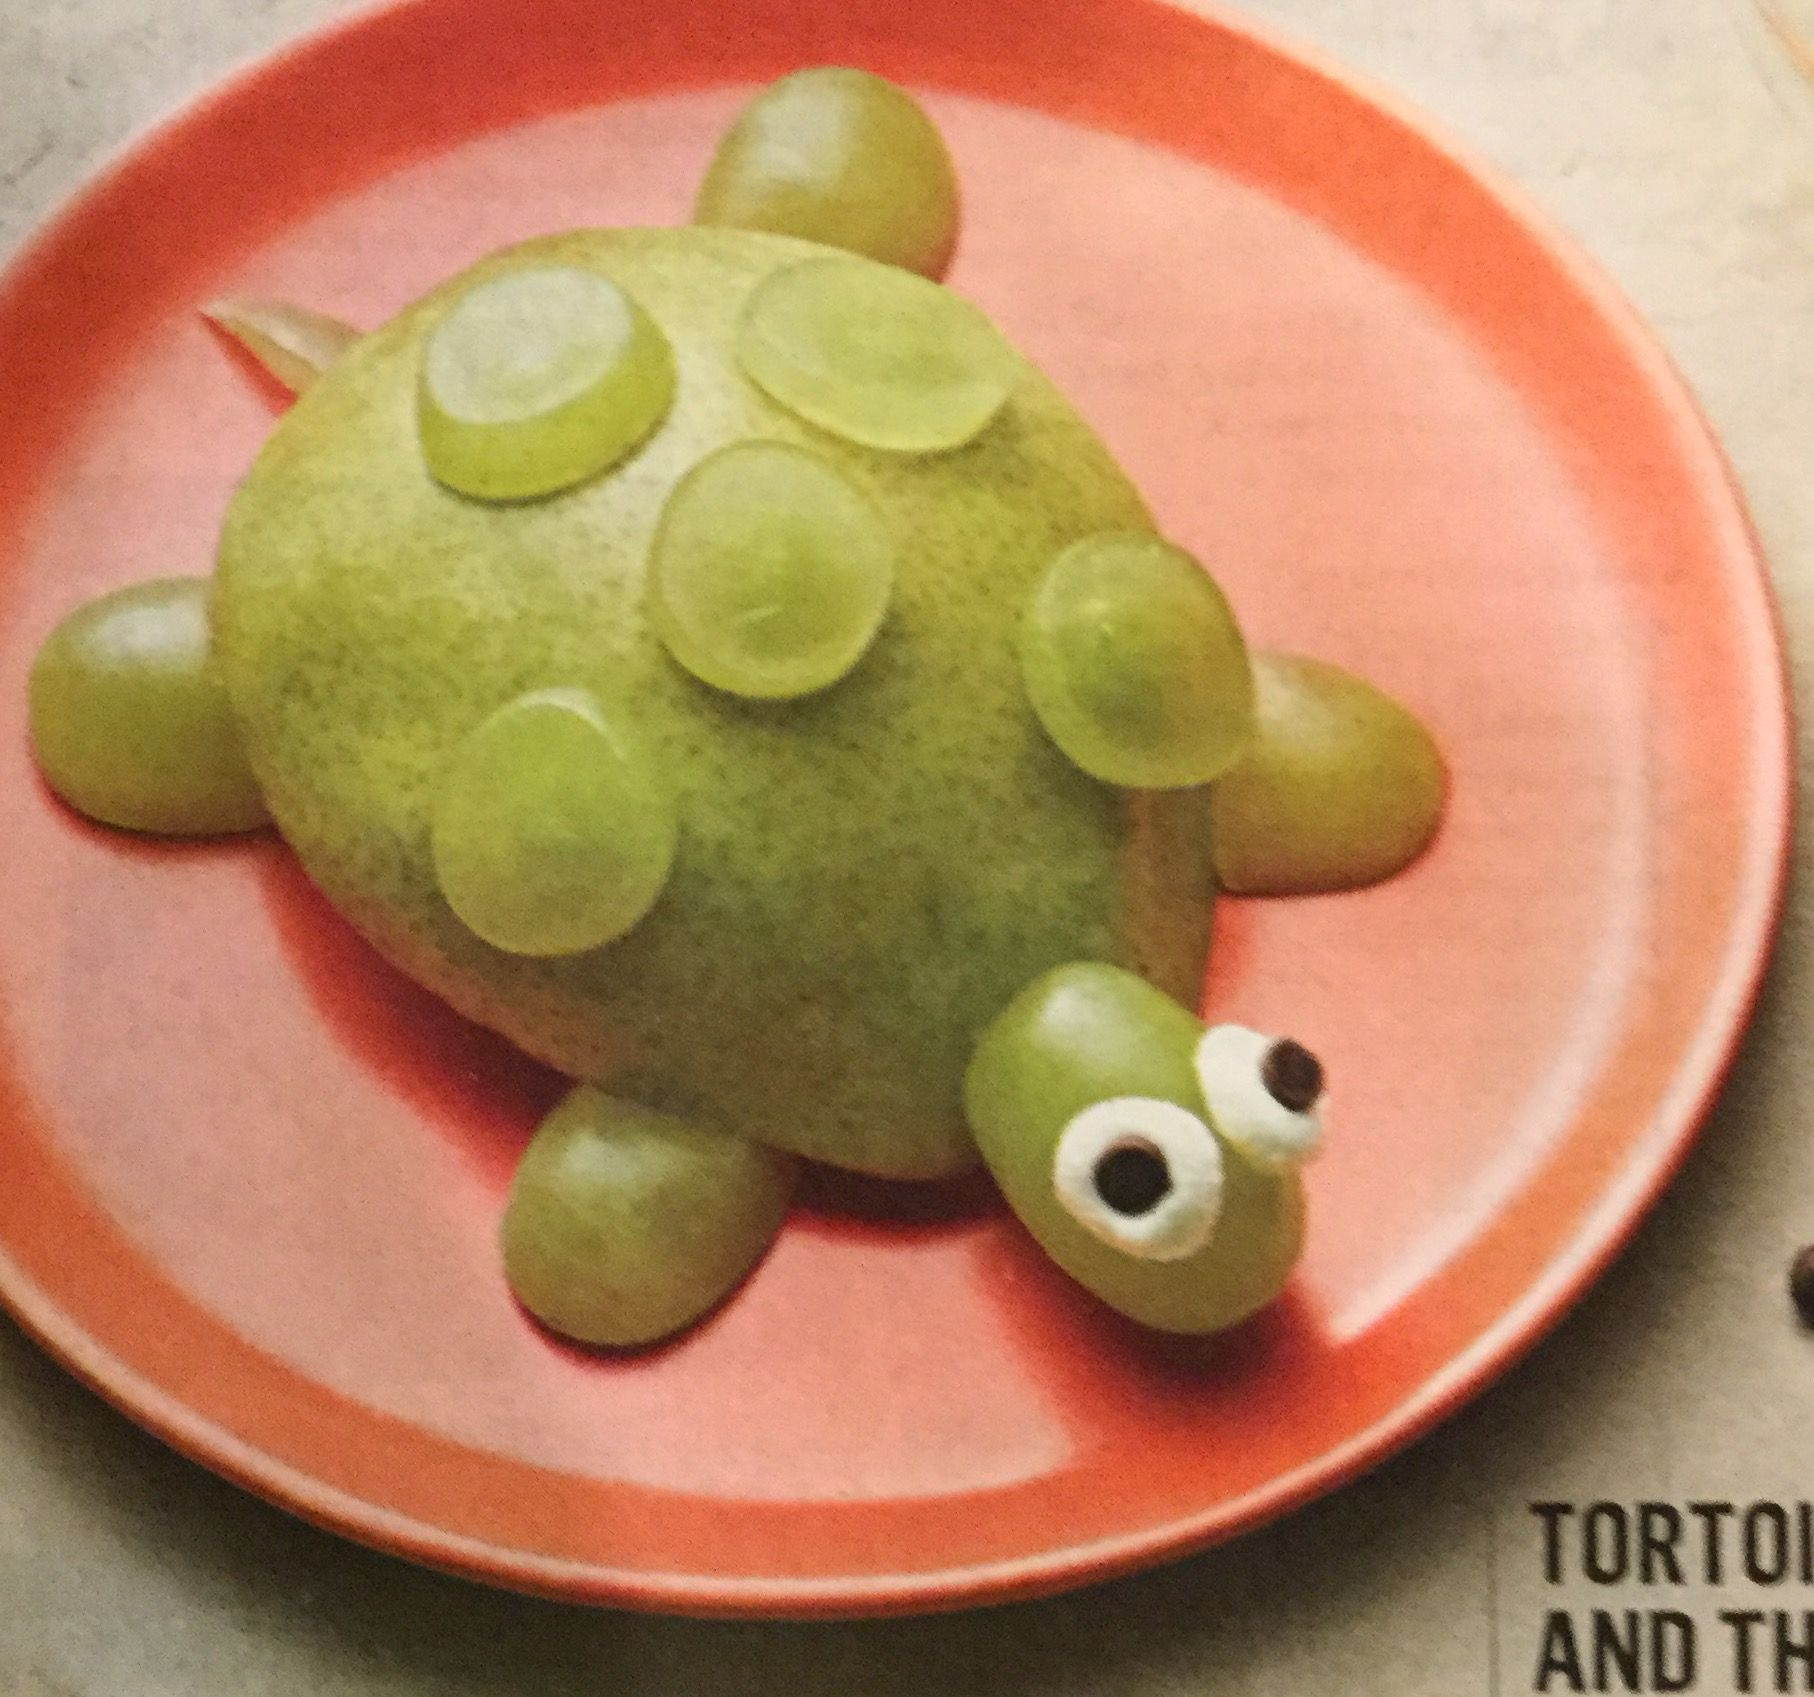 Tortoise and the Pear